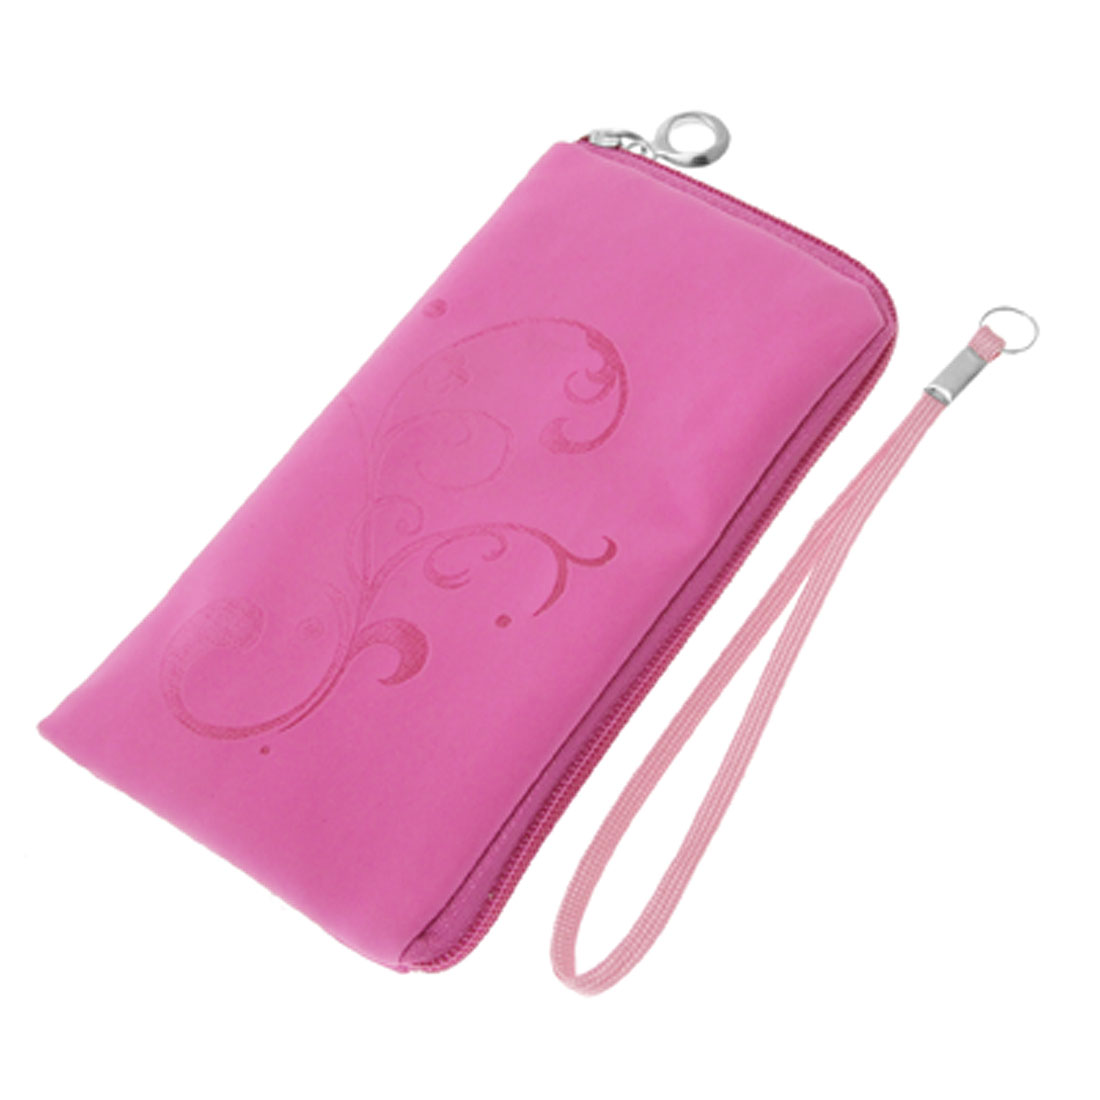 Zipper Fuchsia Purse Makeup Bag Phone Soft Pouch for Cell Phone